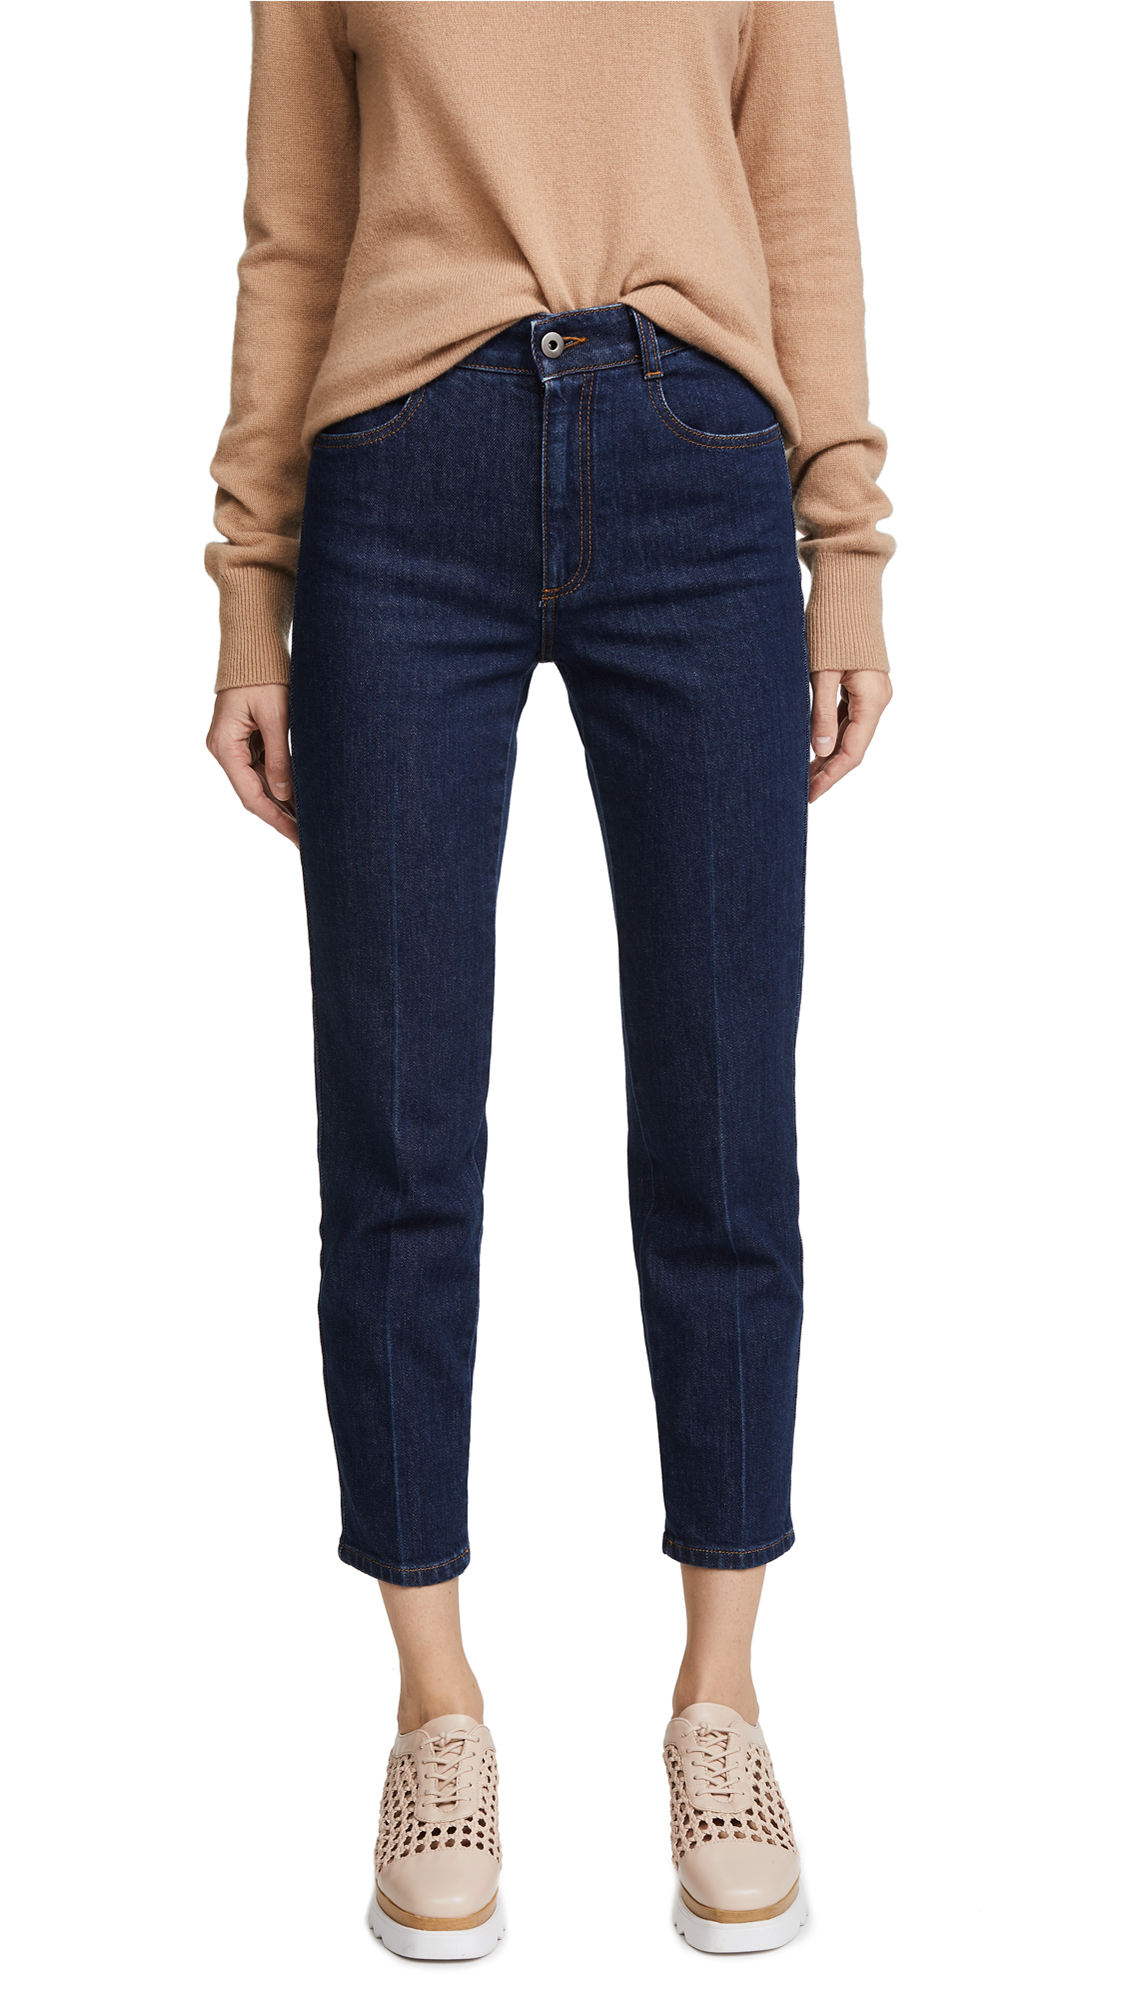 Stella McCartney The High Waist Skinny Jeans - Midnight